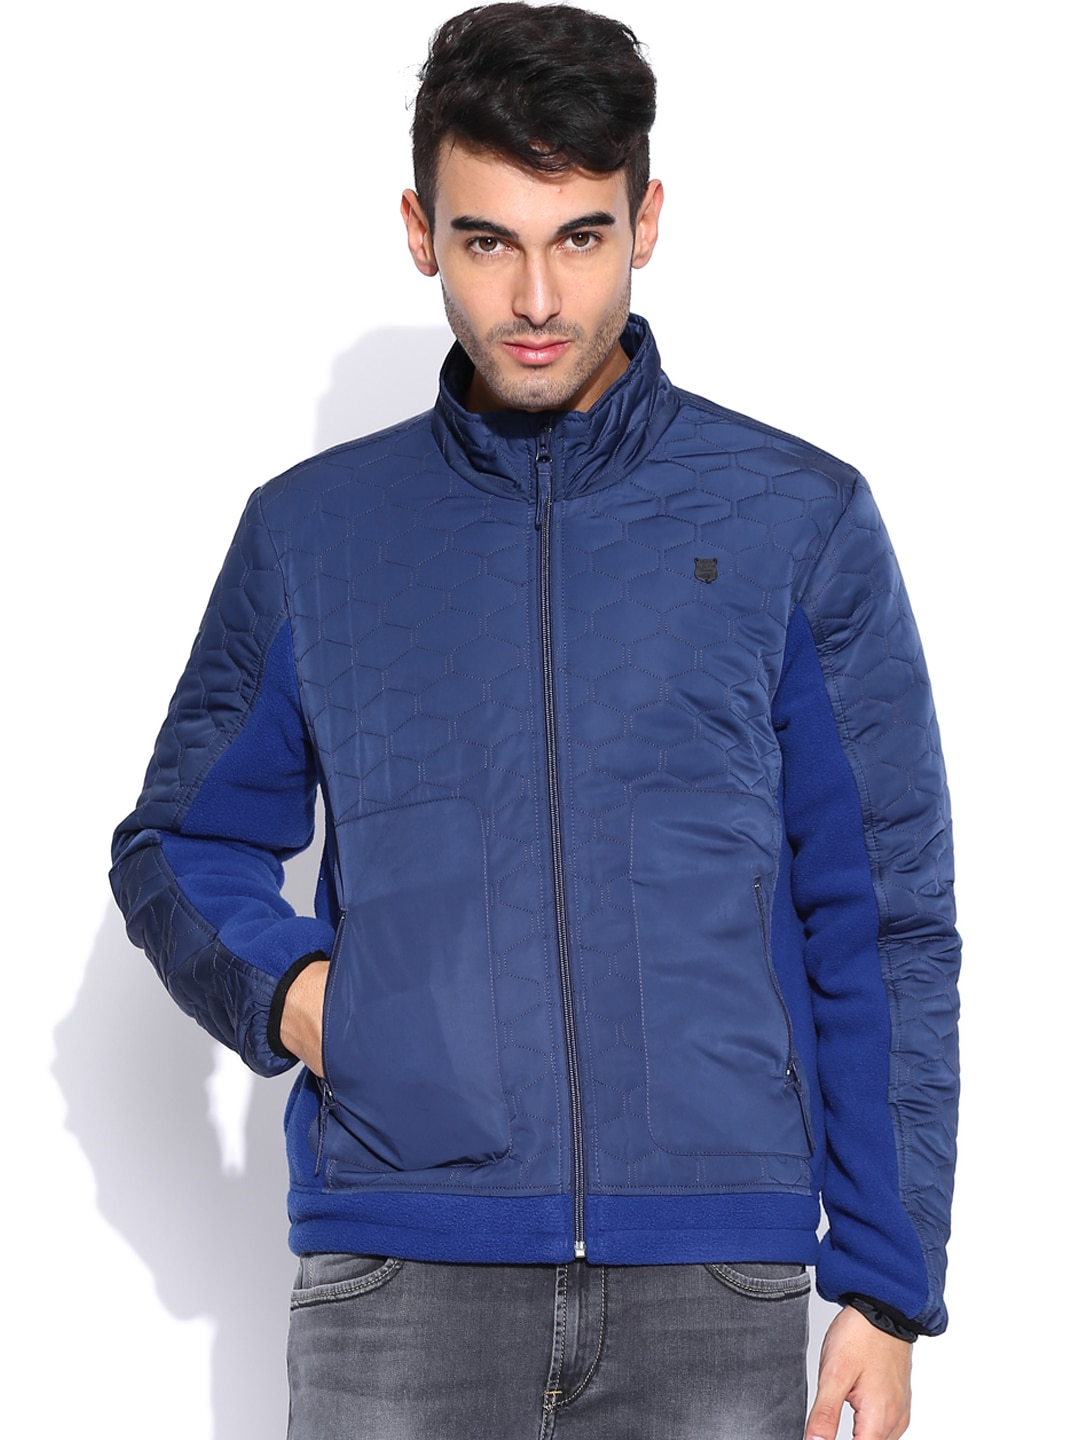 Lee Blue Padded Jacket